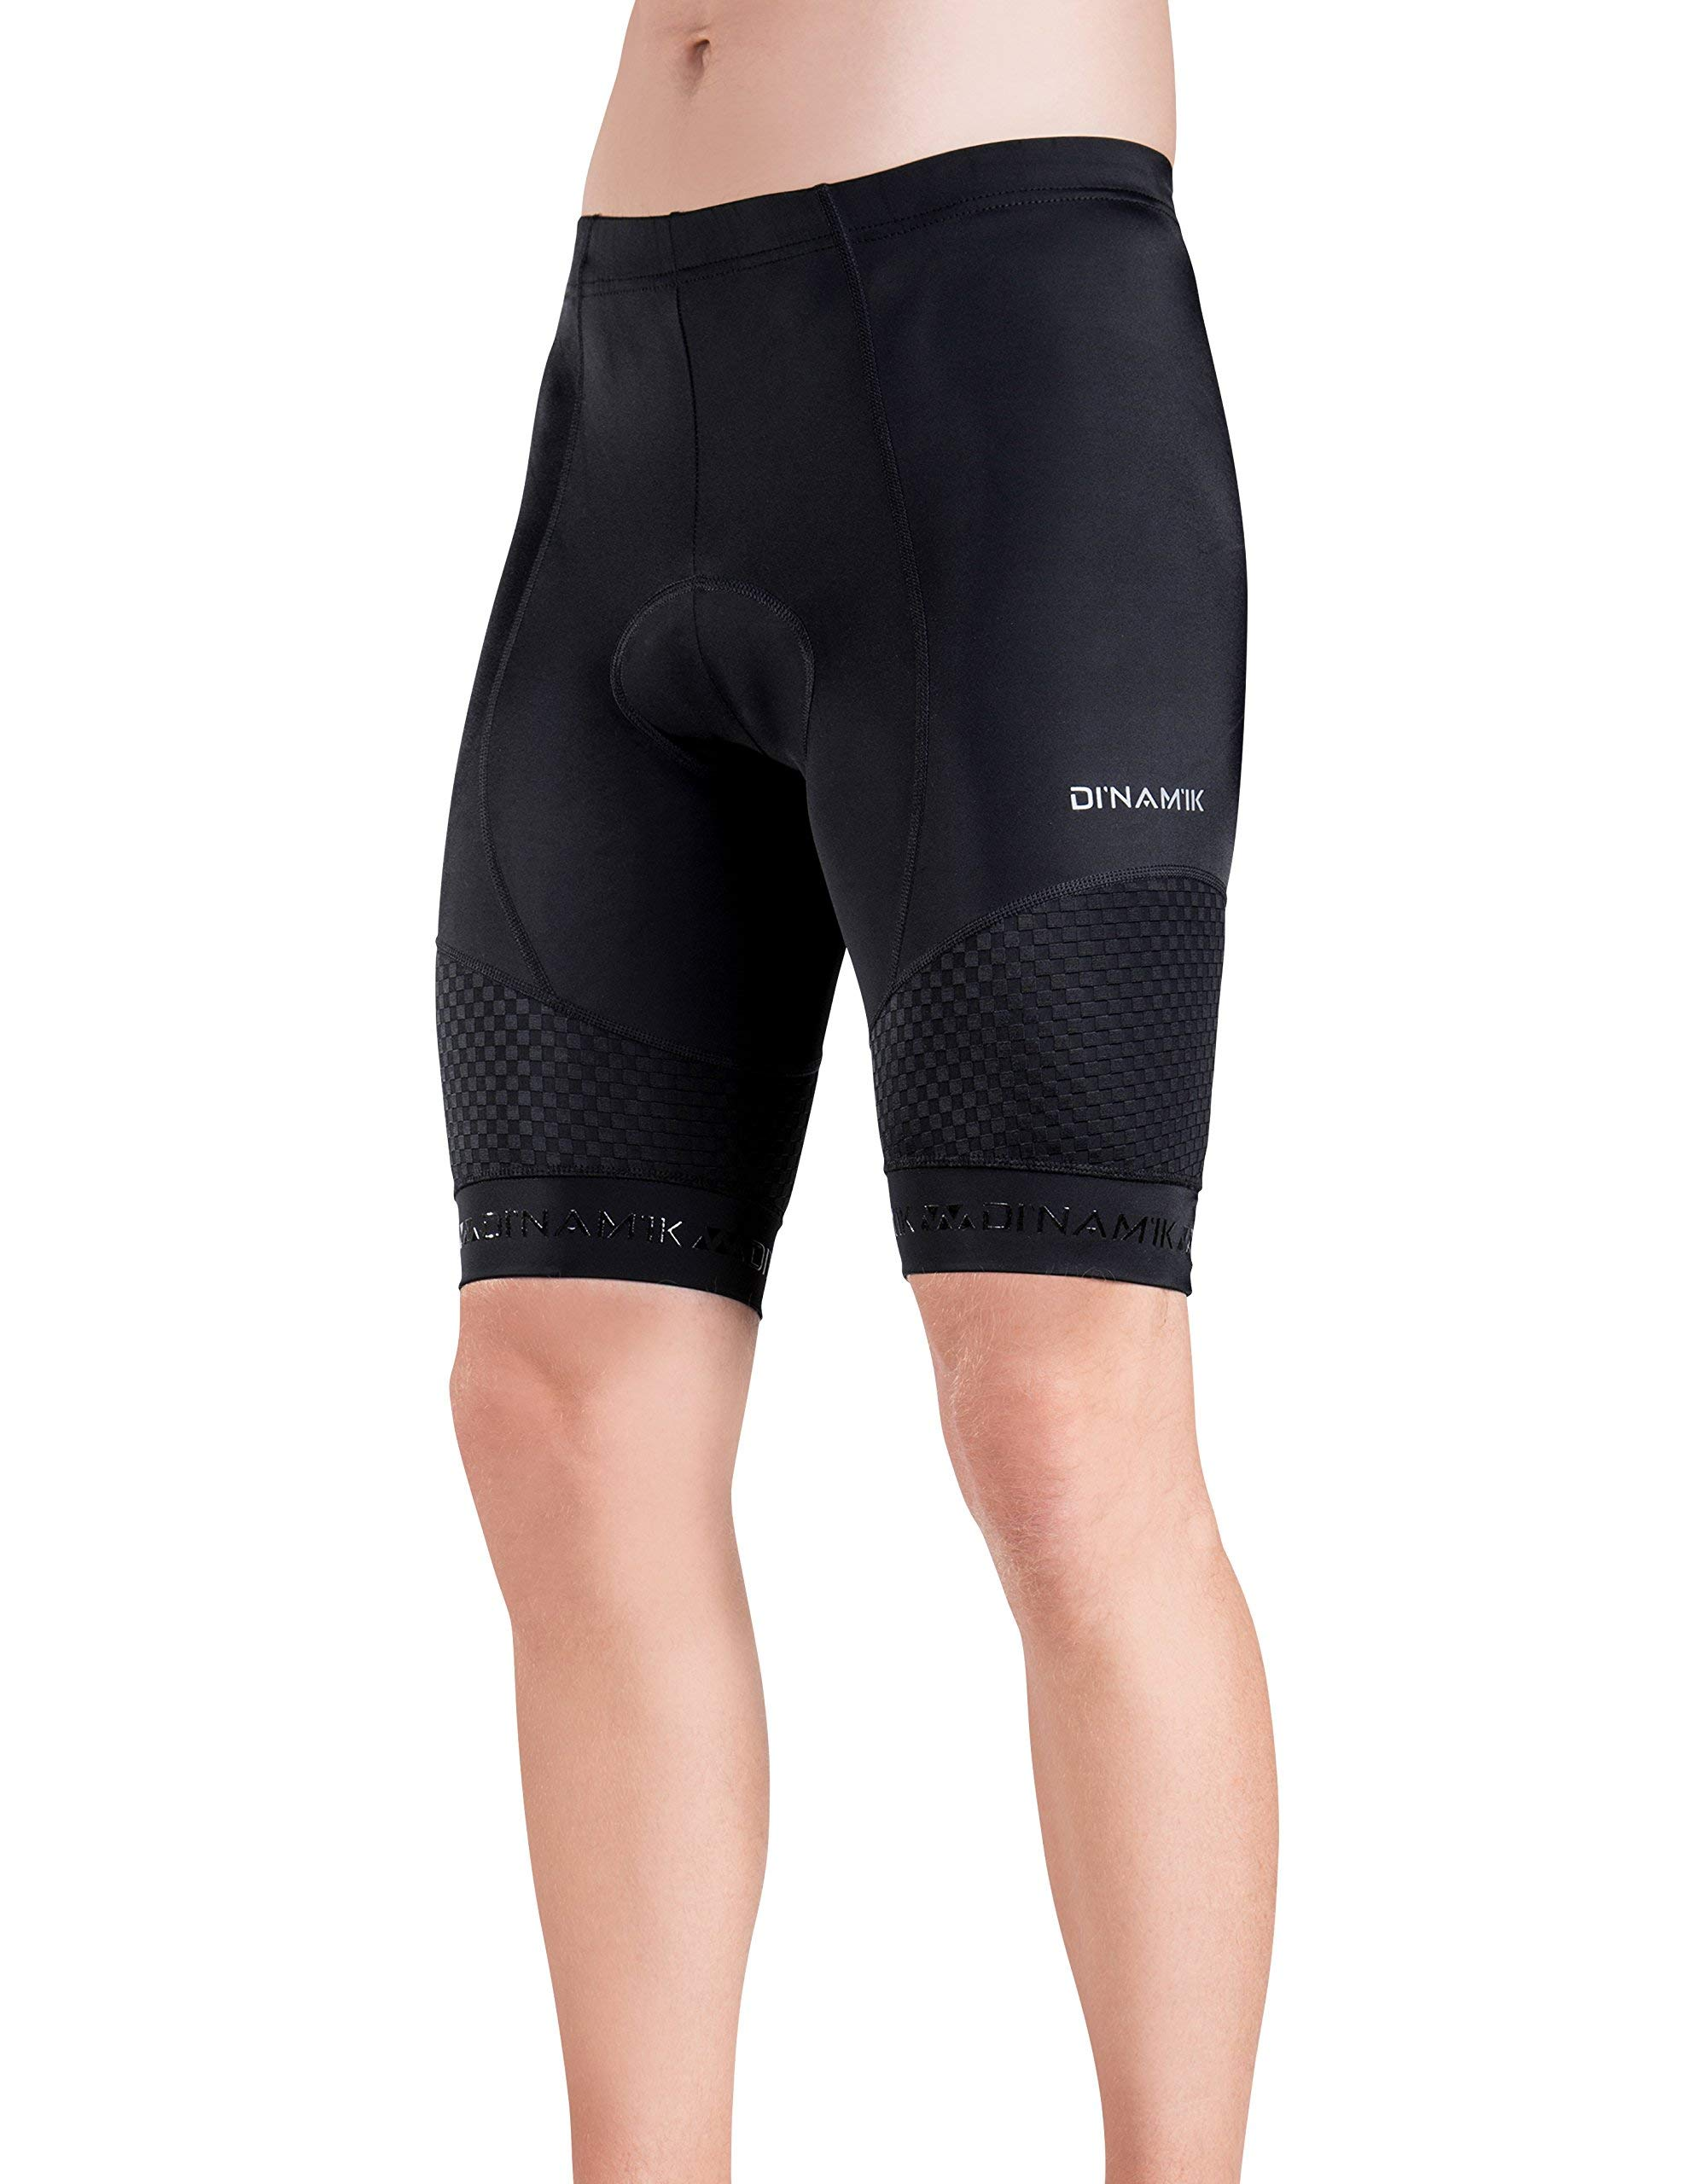 Men's Bike Shorts - Light, Breathable, Padded Stretch Cycling Pants - By Dinamik,Black,Medium by Dinamik